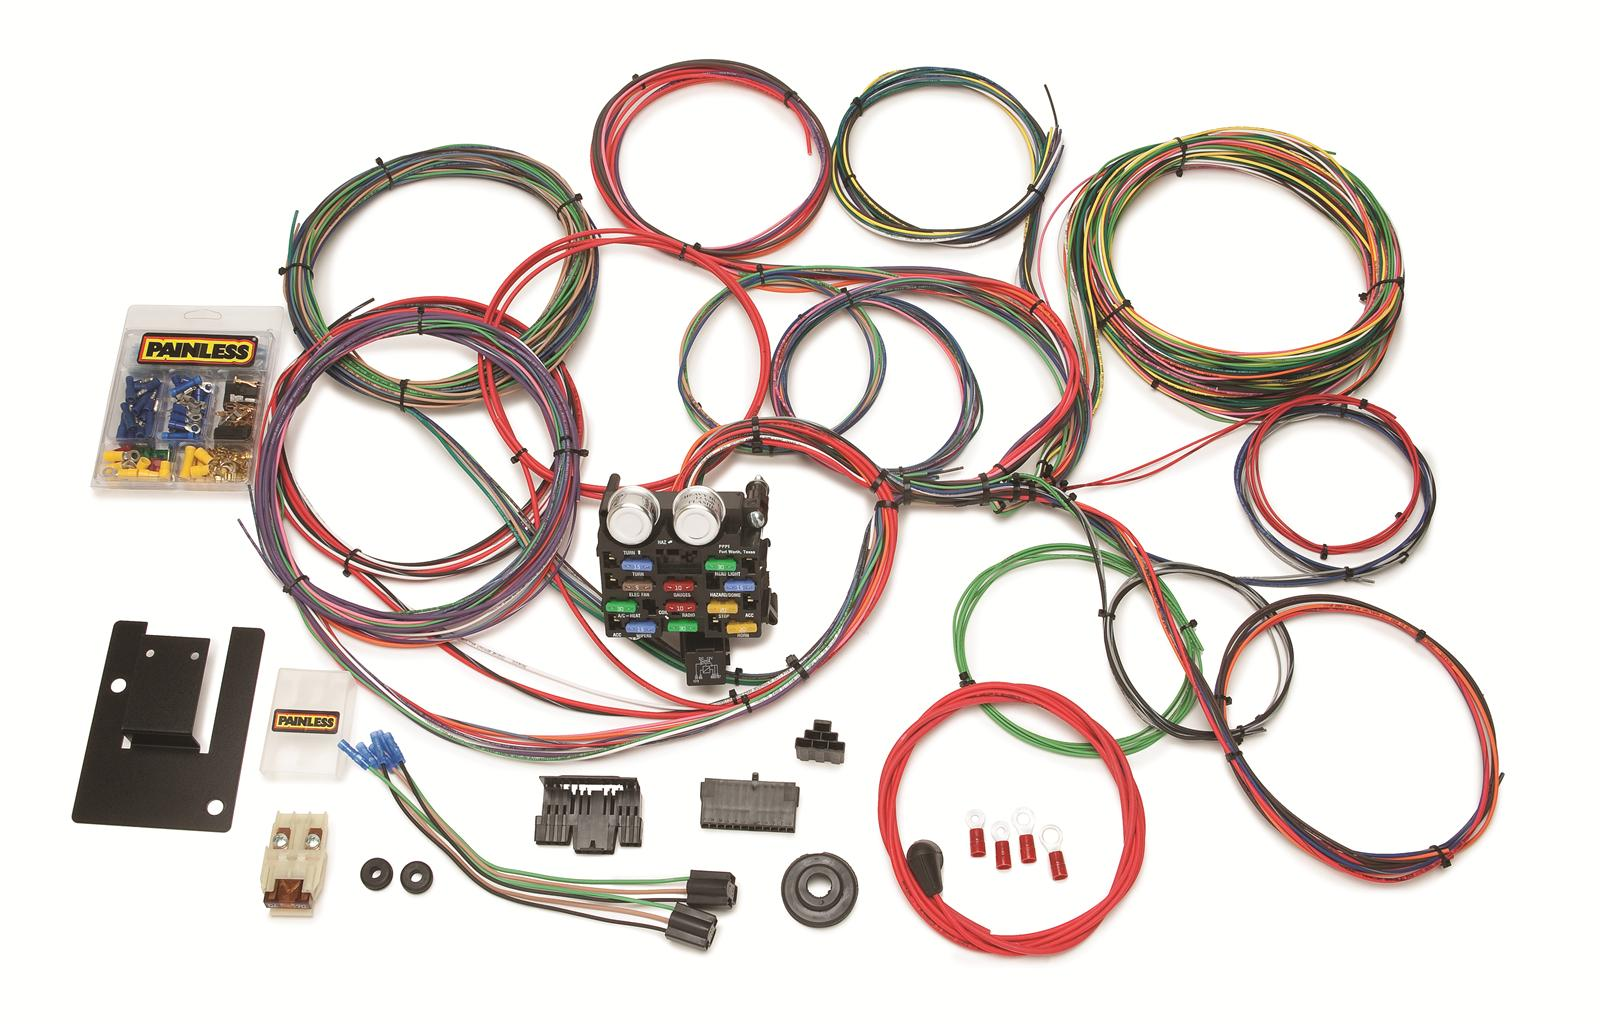 Bel Air Painless Performance 21 Circuit 1955 57 Tri Five Chevy Panther Wiring Harness Harnesses 20107 Free Shipping On Orders Over 99 At Summit Racing